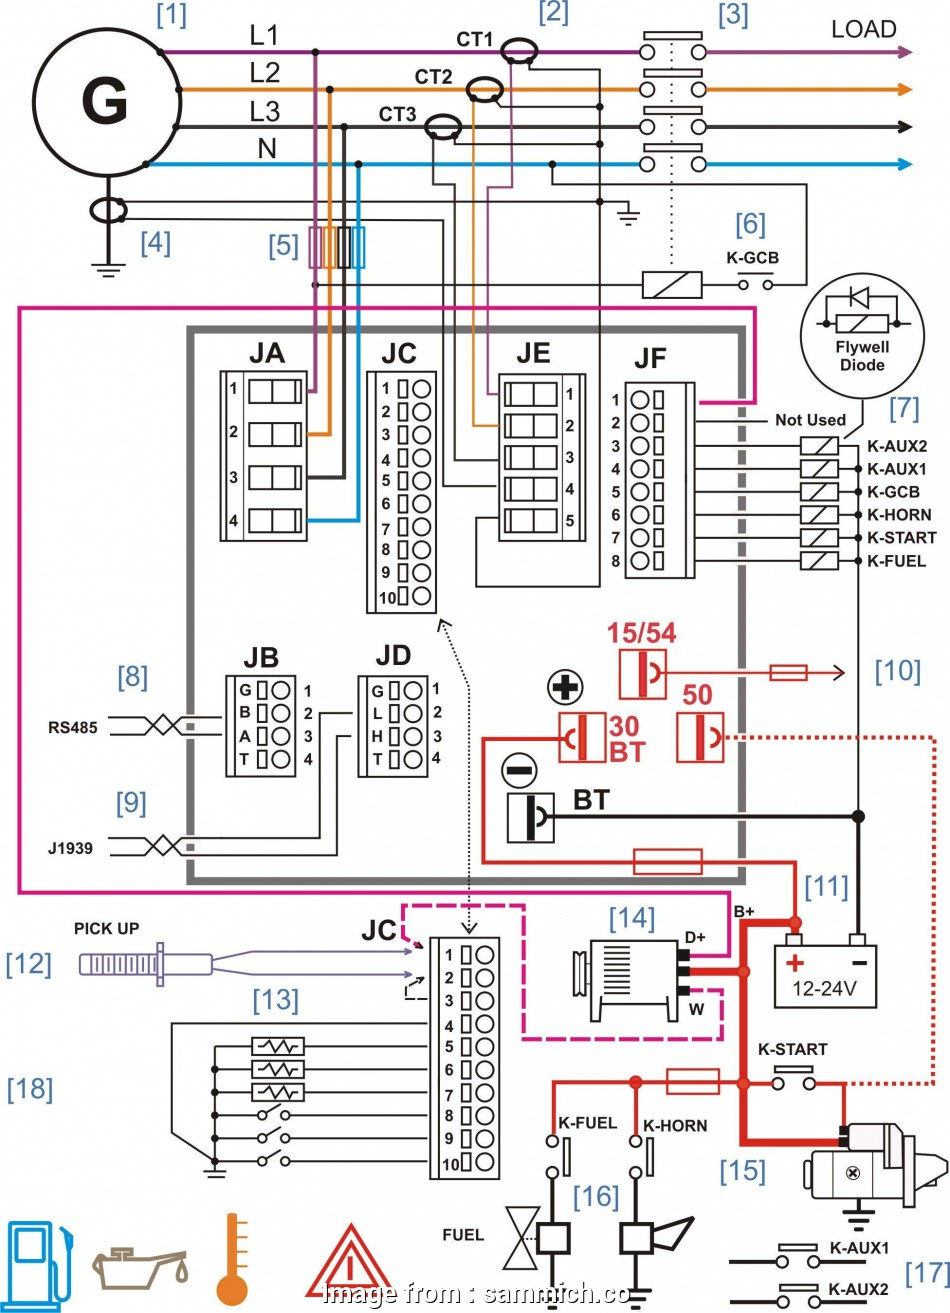 1969 Chevelle Starter Wiring Diagram Brilliant 1967 Chevelle Generator Wiring Diagram Wire